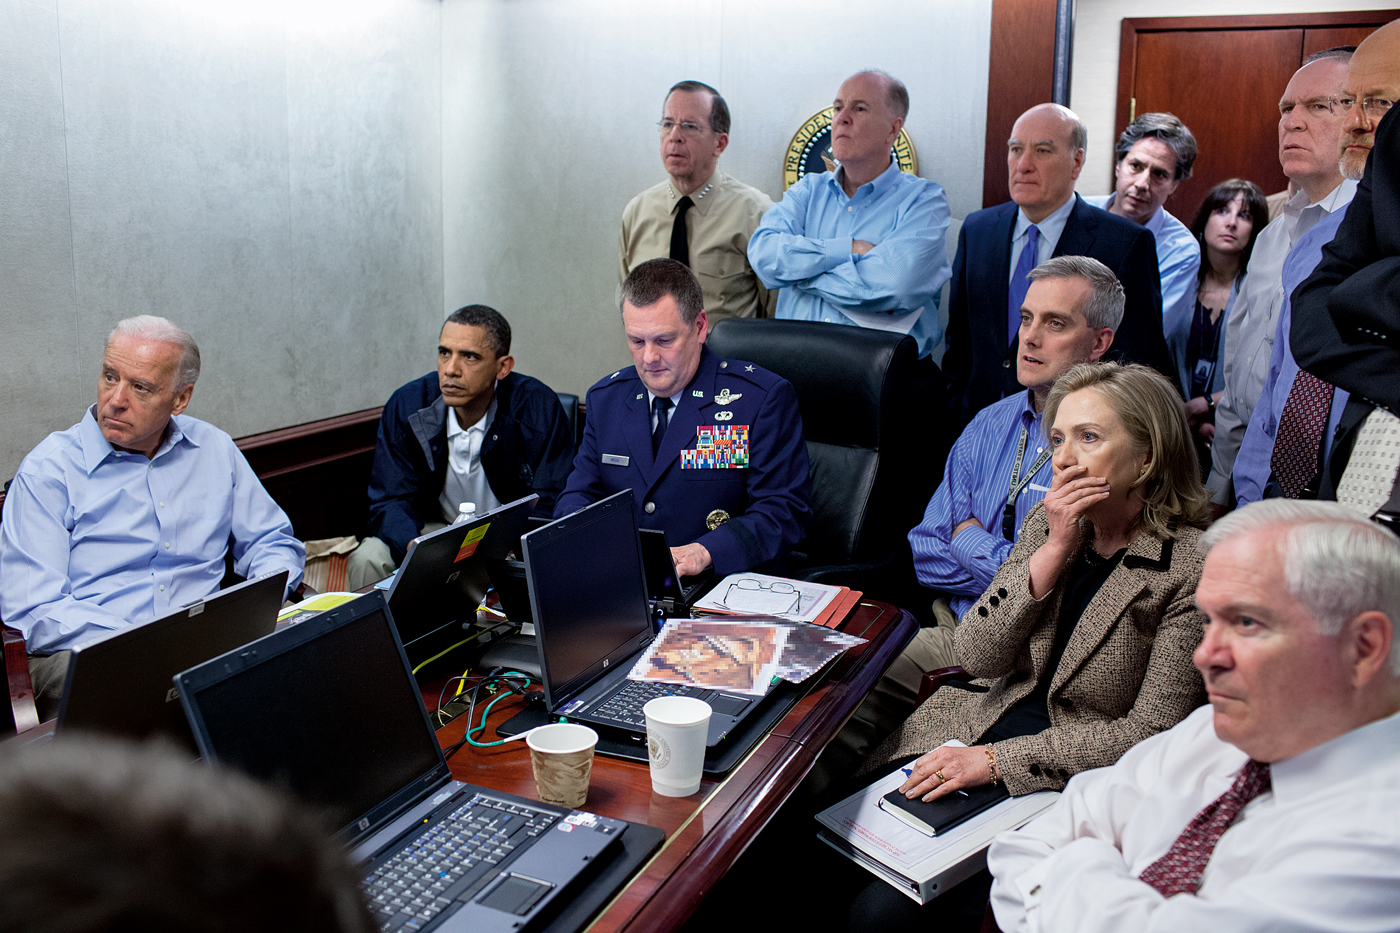 Photograph taken by official White House photographer Pete Souza of President Barack Obama, Vice President Joe Biden, and members of the national security team in the White House Situation Room watching in suspense as Navy SEALs raid Osama bin Laden's secret compound in May 2011.